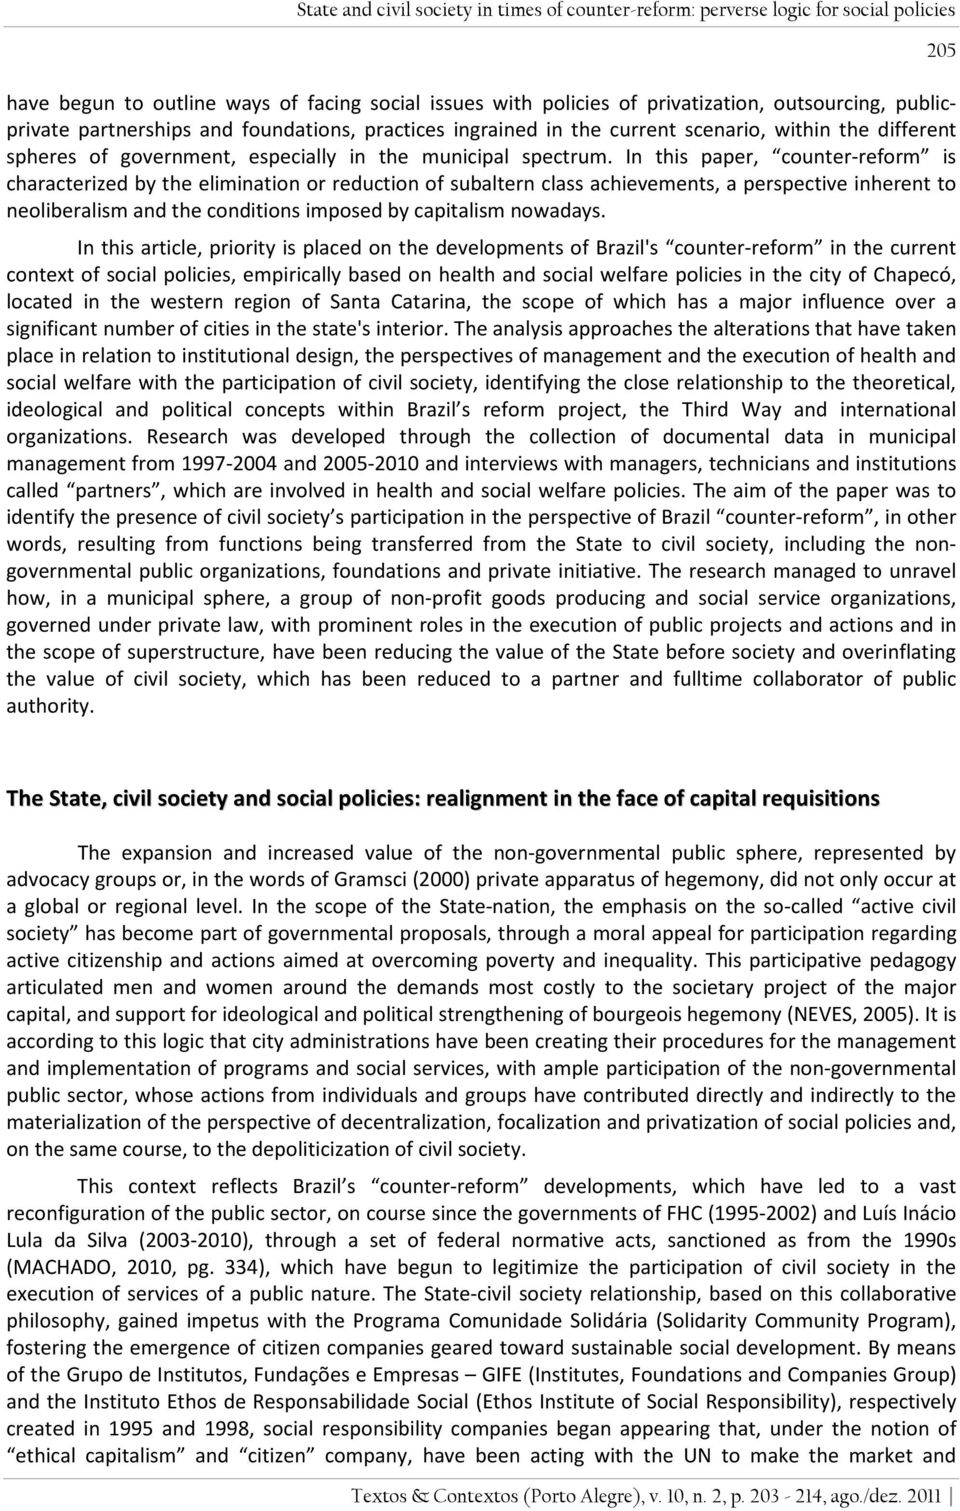 In this paper, counter-reform is characterized by the elimination or reduction of subaltern class achievements, a perspective inherent to neoliberalism and the conditions imposed by capitalism